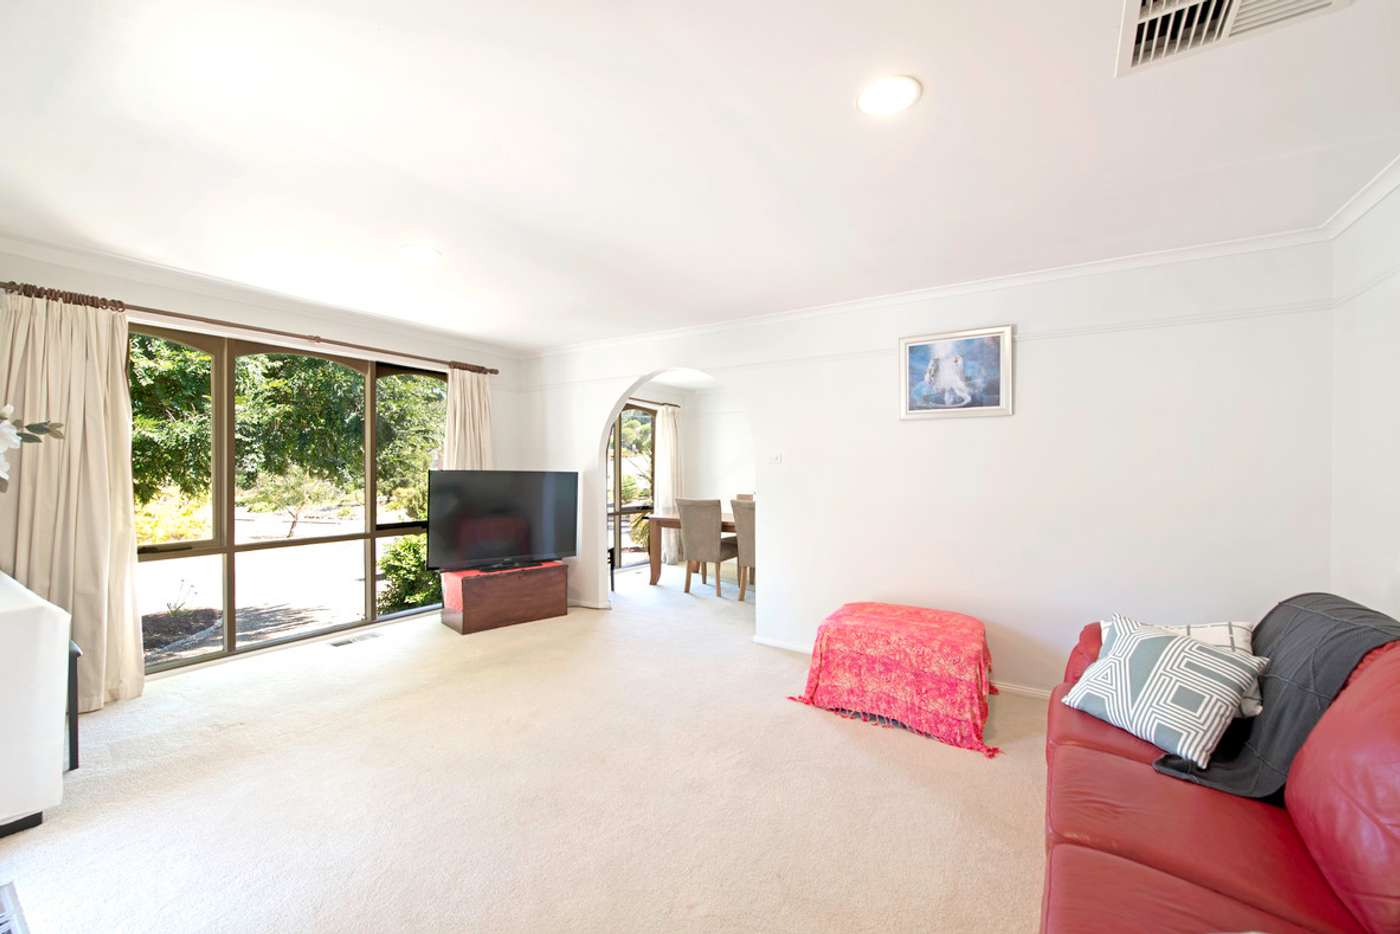 Sixth view of Homely house listing, 1 Shackell Place, Wanniassa ACT 2903